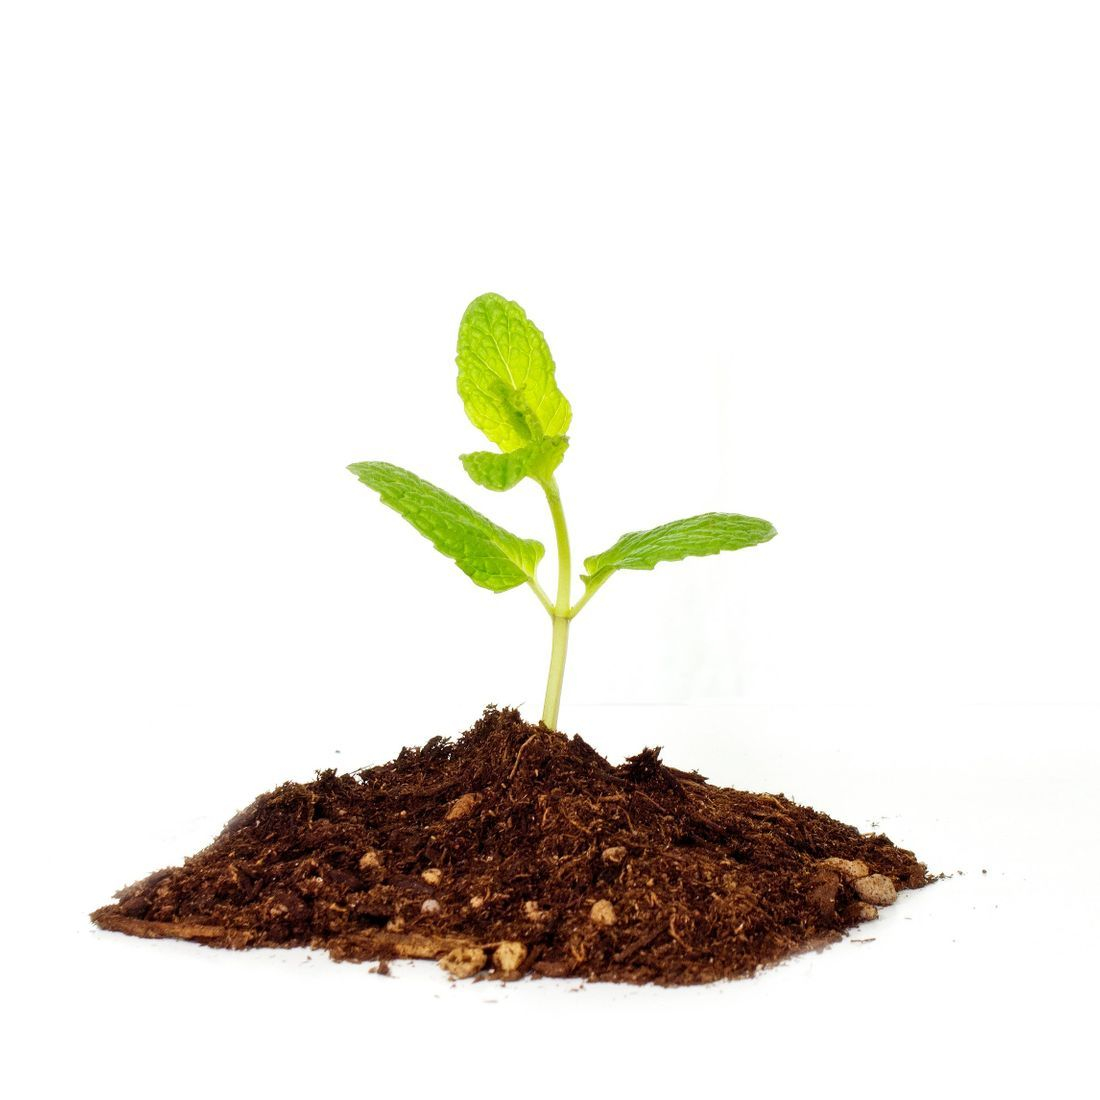 Recruitment Business - running a tree planting scheme